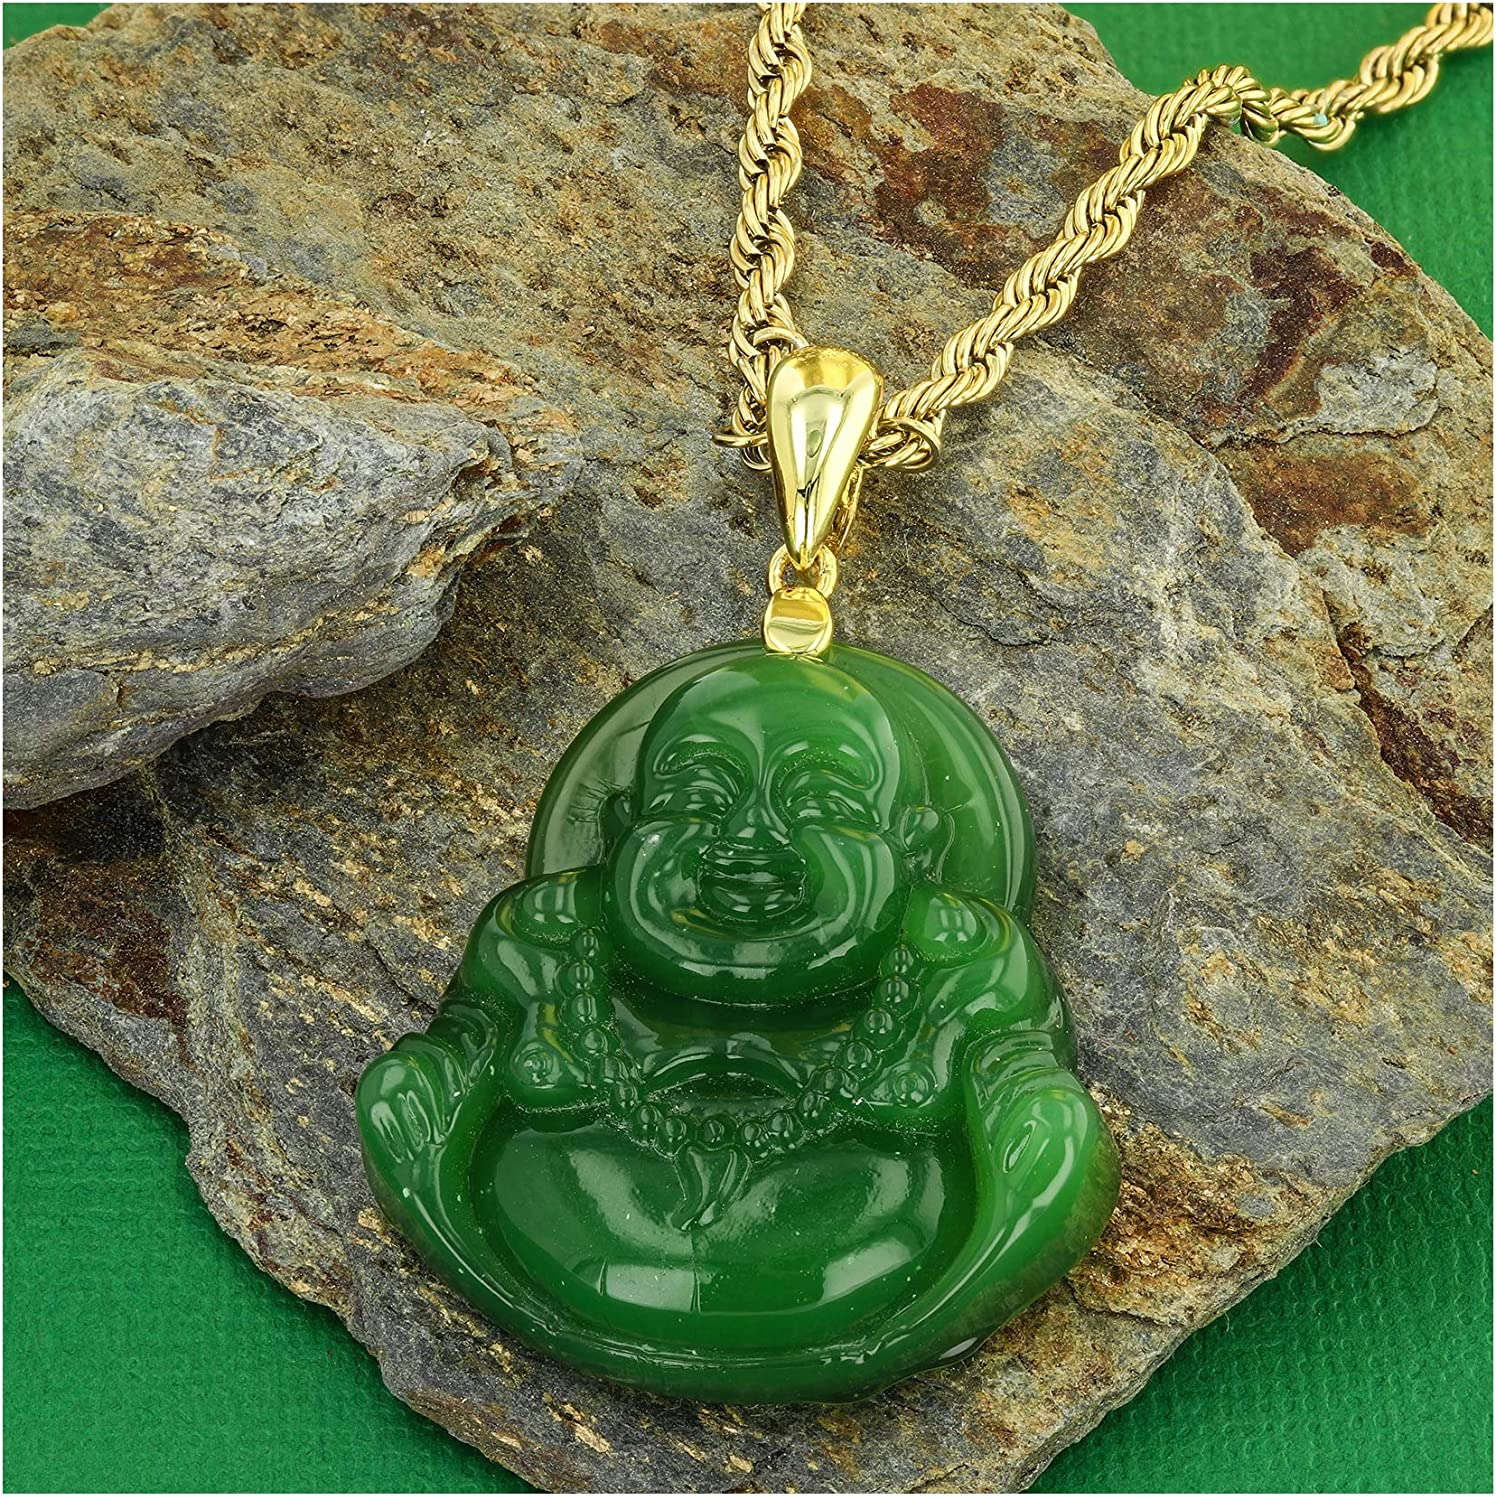 Buddha Necklace Green Jade Mens Womens Luck Happy Green Jade Buddha Pendant Laughing Buddha Statue 14k Gold Bonded Rope Chain Necklace Pendant Certified Grade A Jadeite Jade Hand Crafted Jade Neckalce